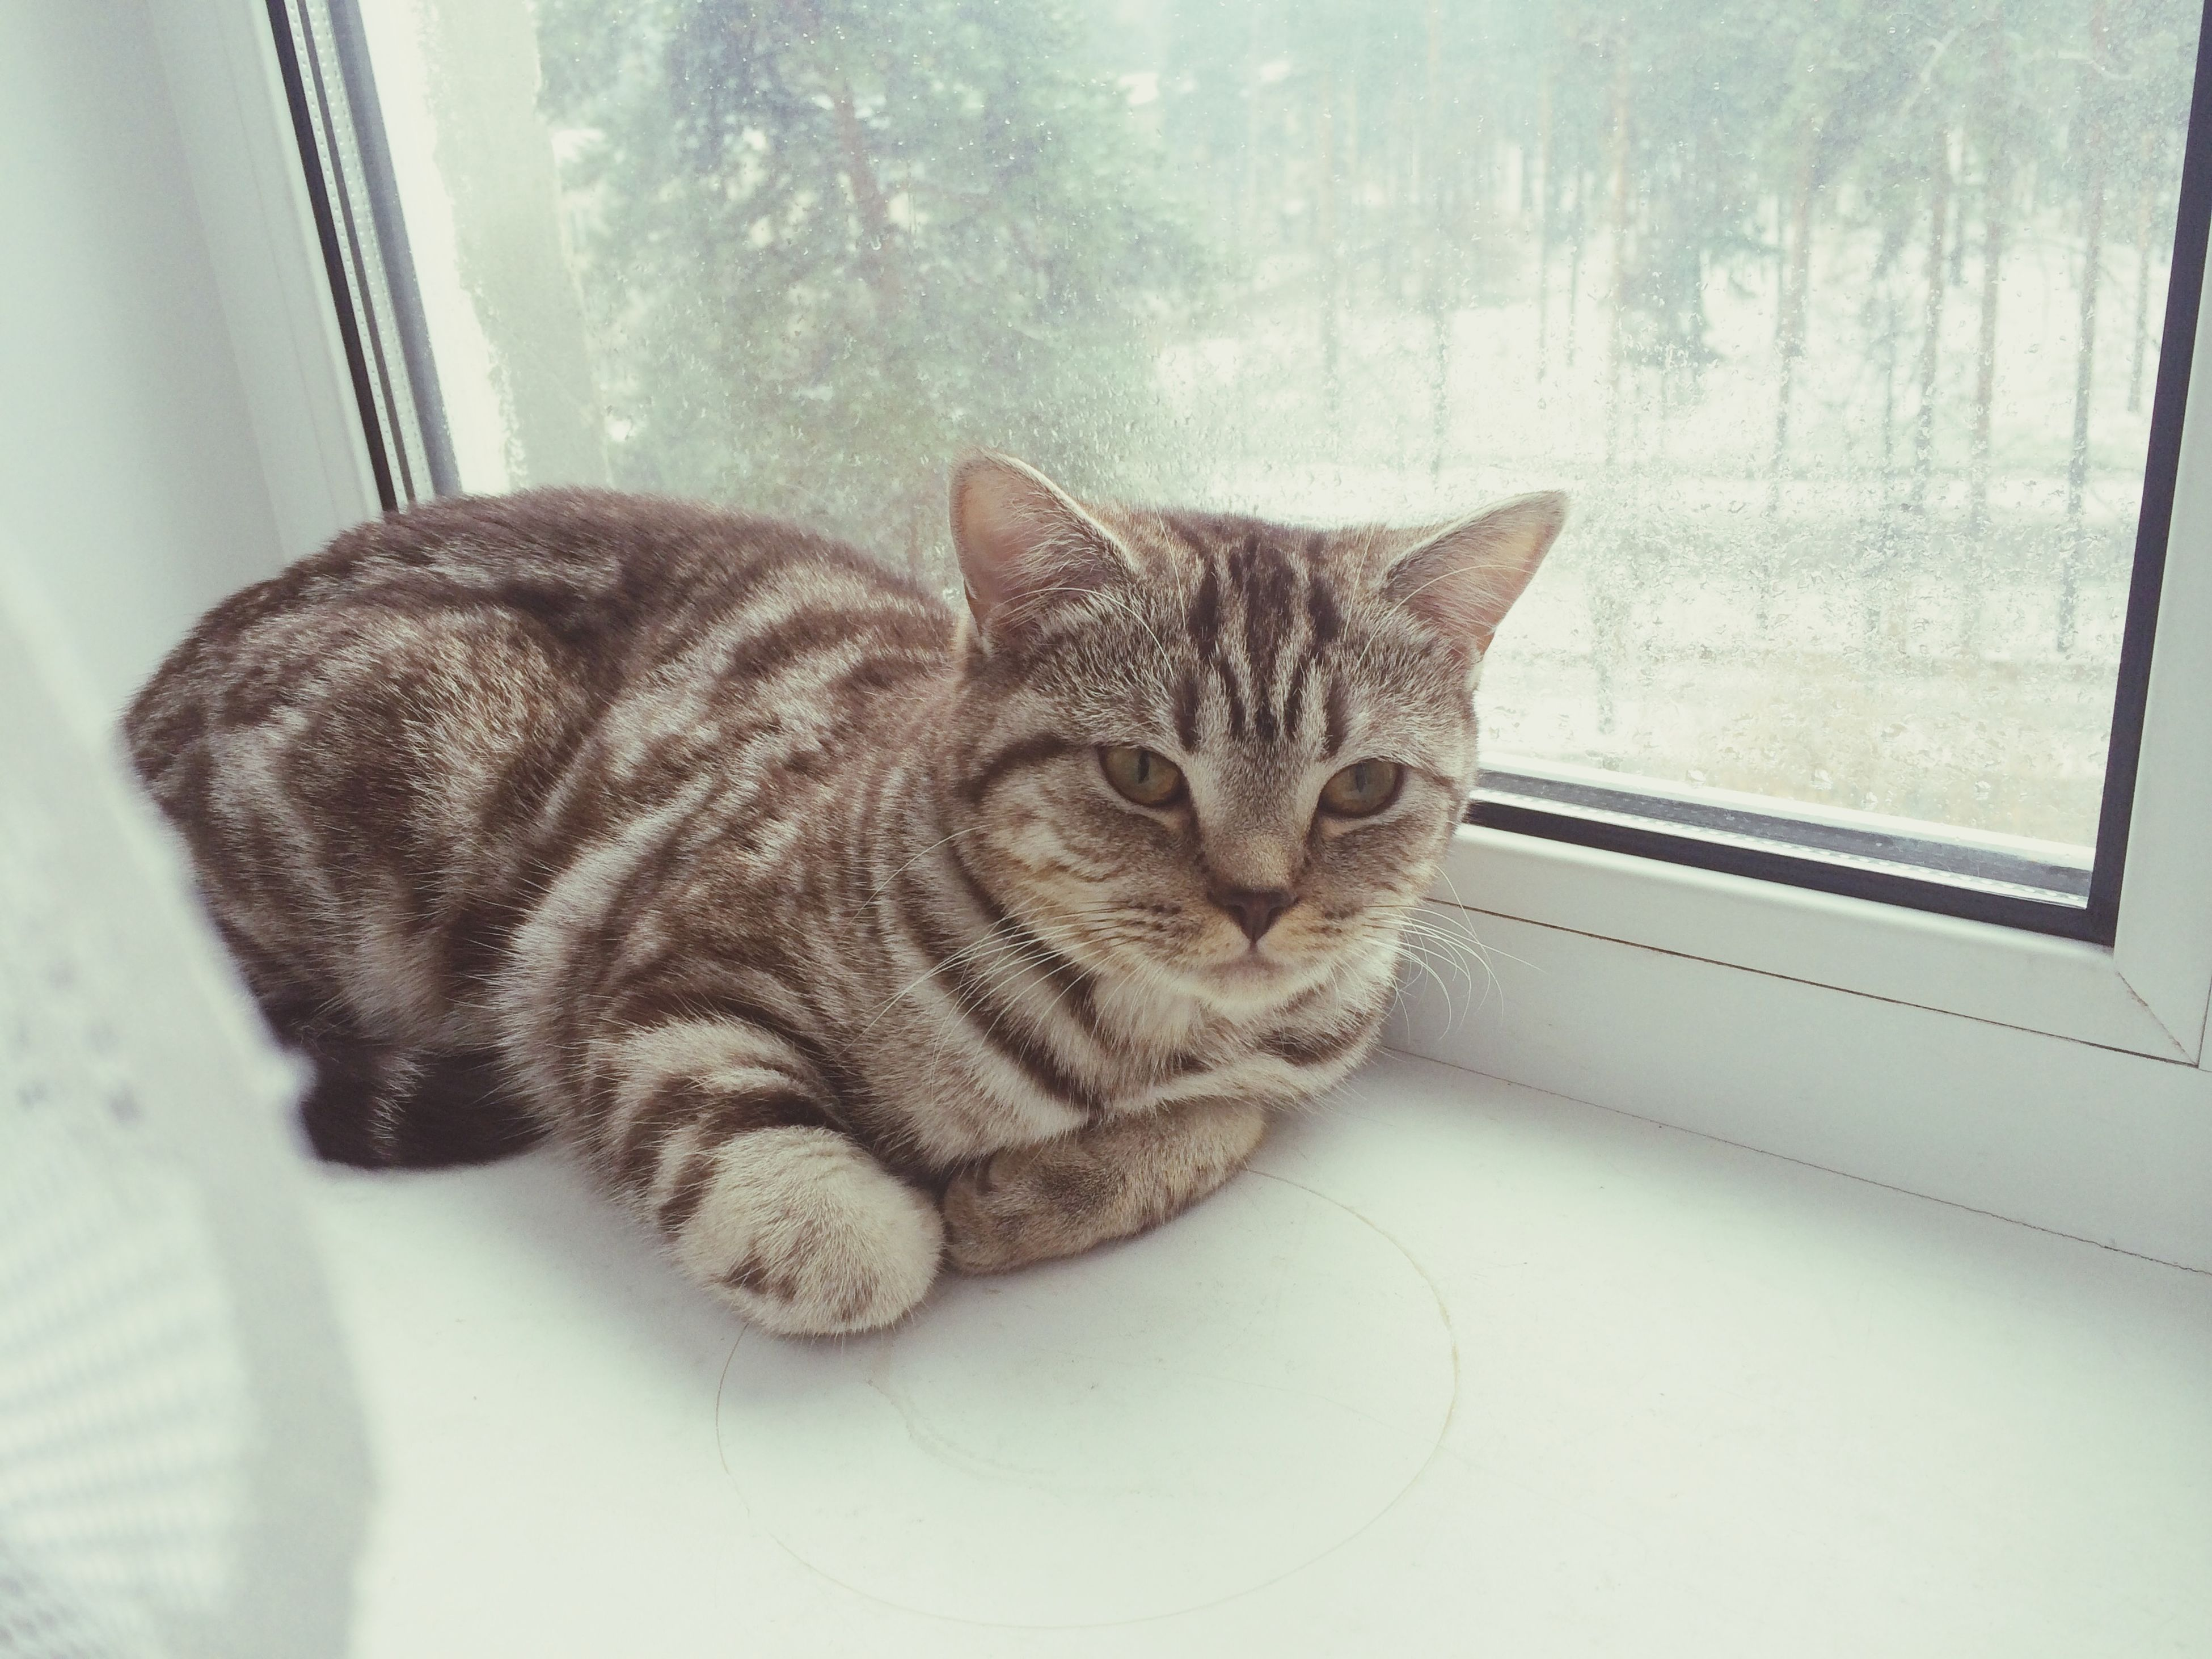 pets, indoors, domestic animals, domestic cat, cat, one animal, animal themes, mammal, feline, relaxation, whisker, resting, lying down, sleeping, home interior, bed, window, close-up, eyes closed, home